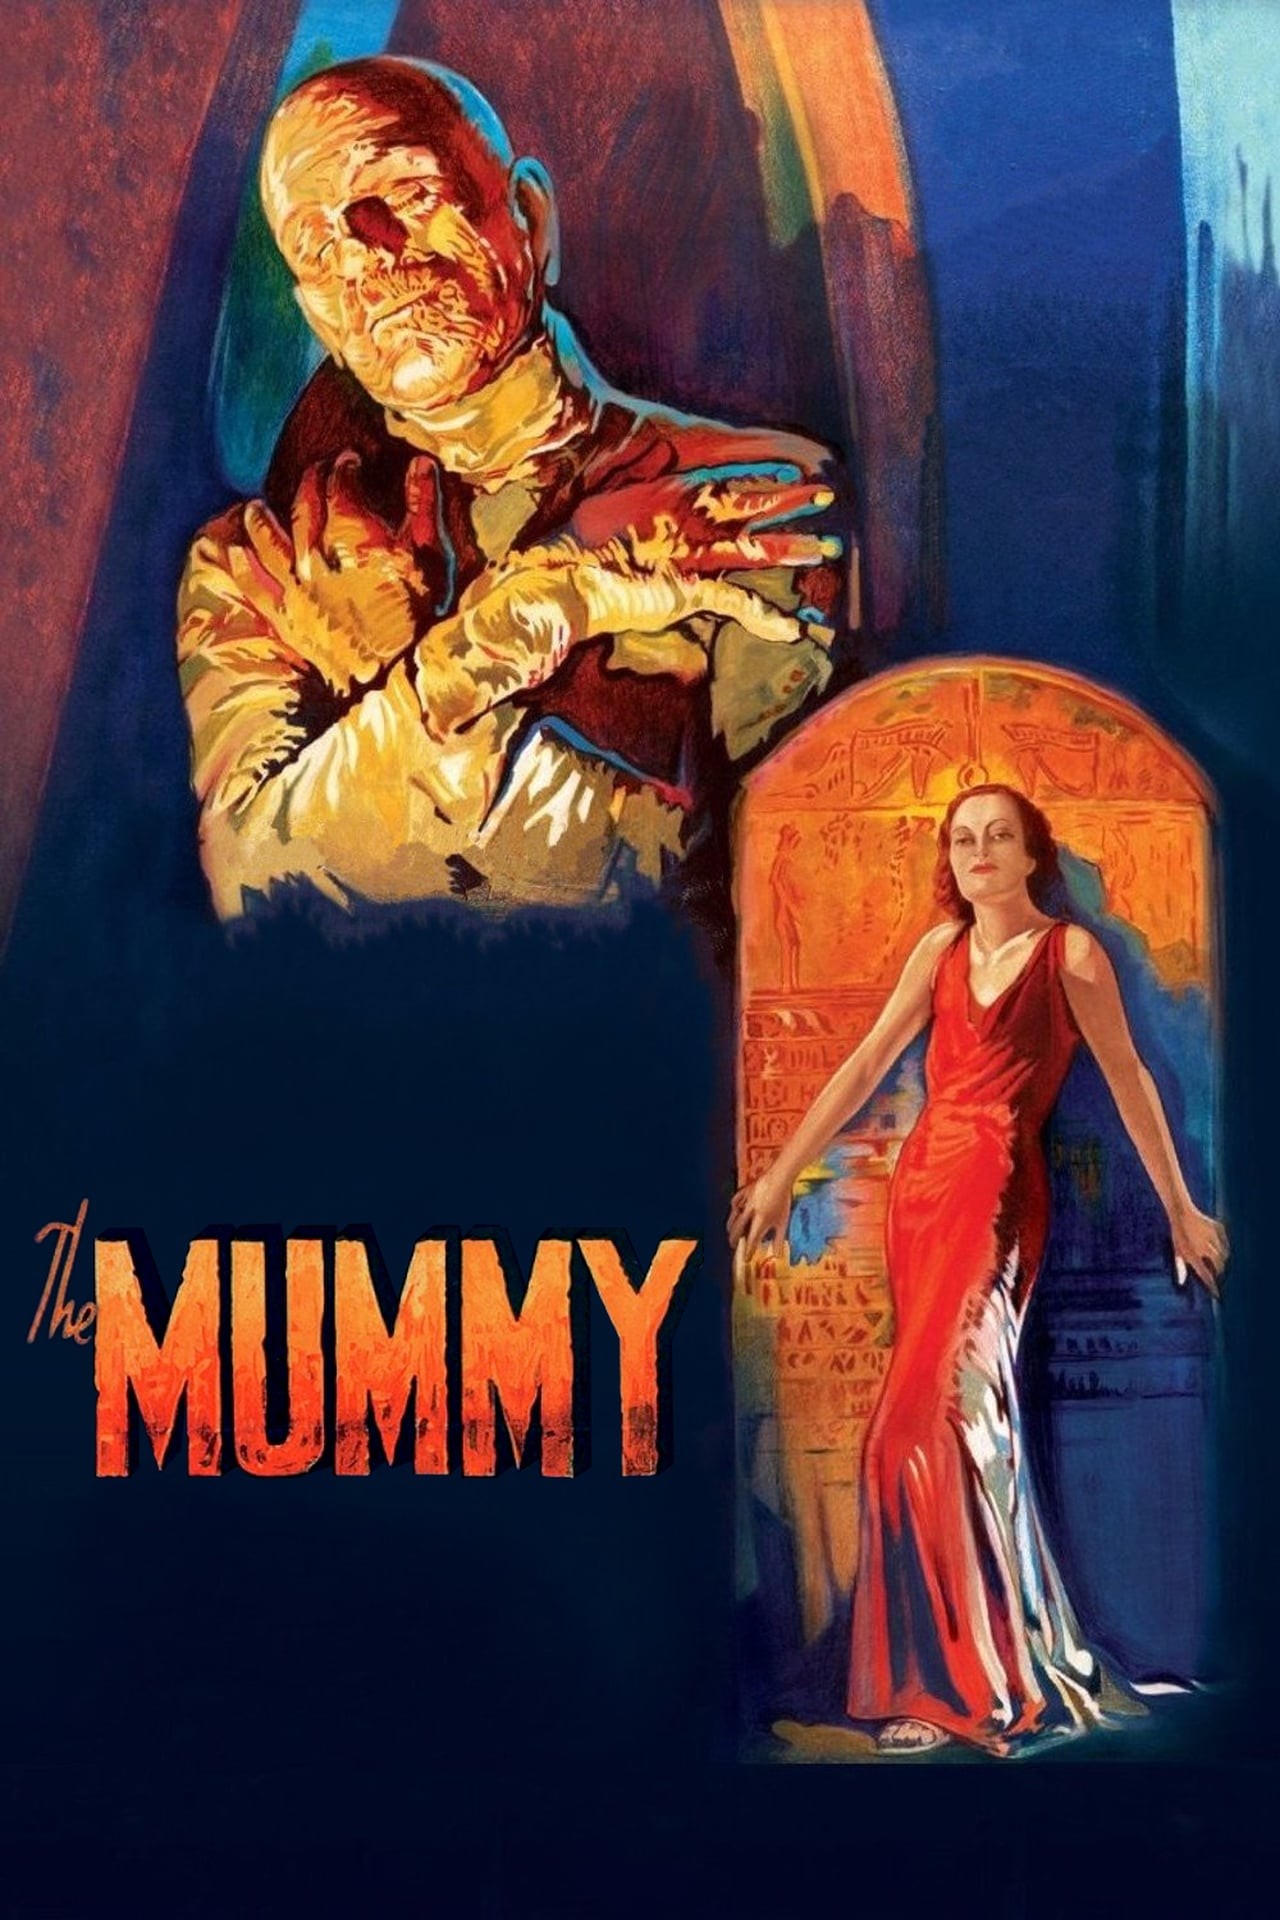 THE MUMMY [1932]